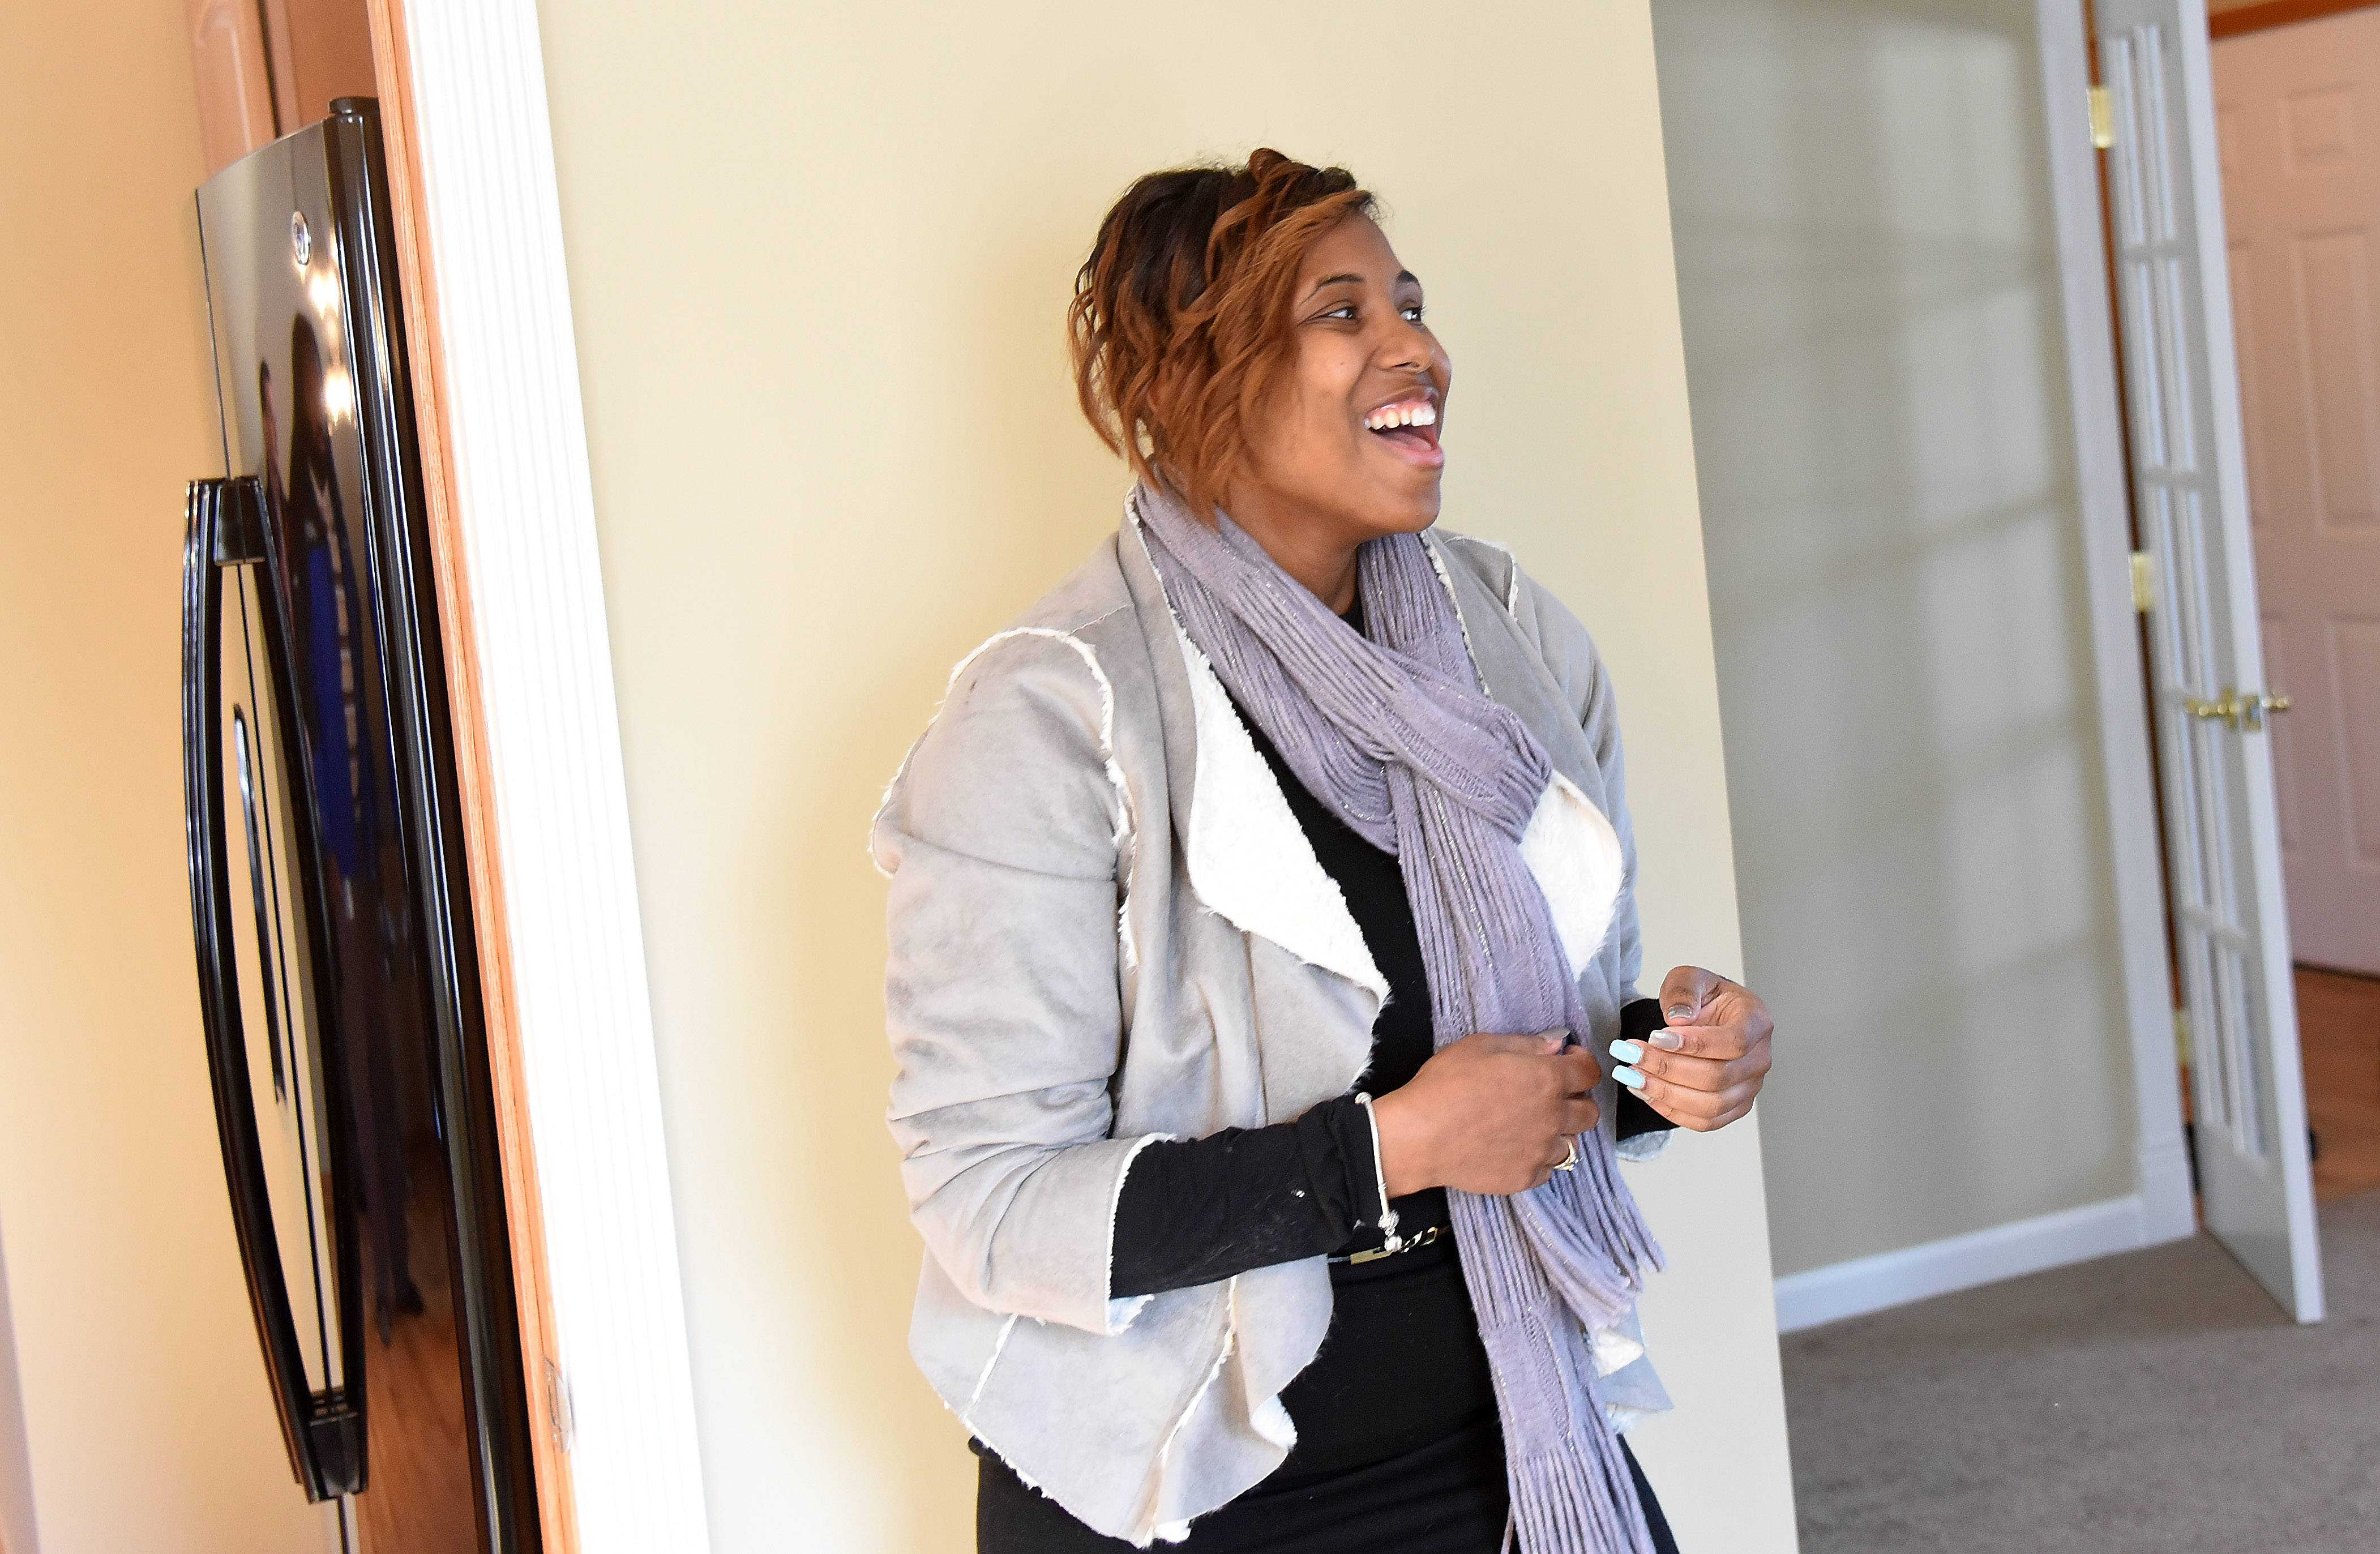 U.S. Navy veteran Shynae Murphy tours her newly renovated home in Algonquin for the first time Tuesday.